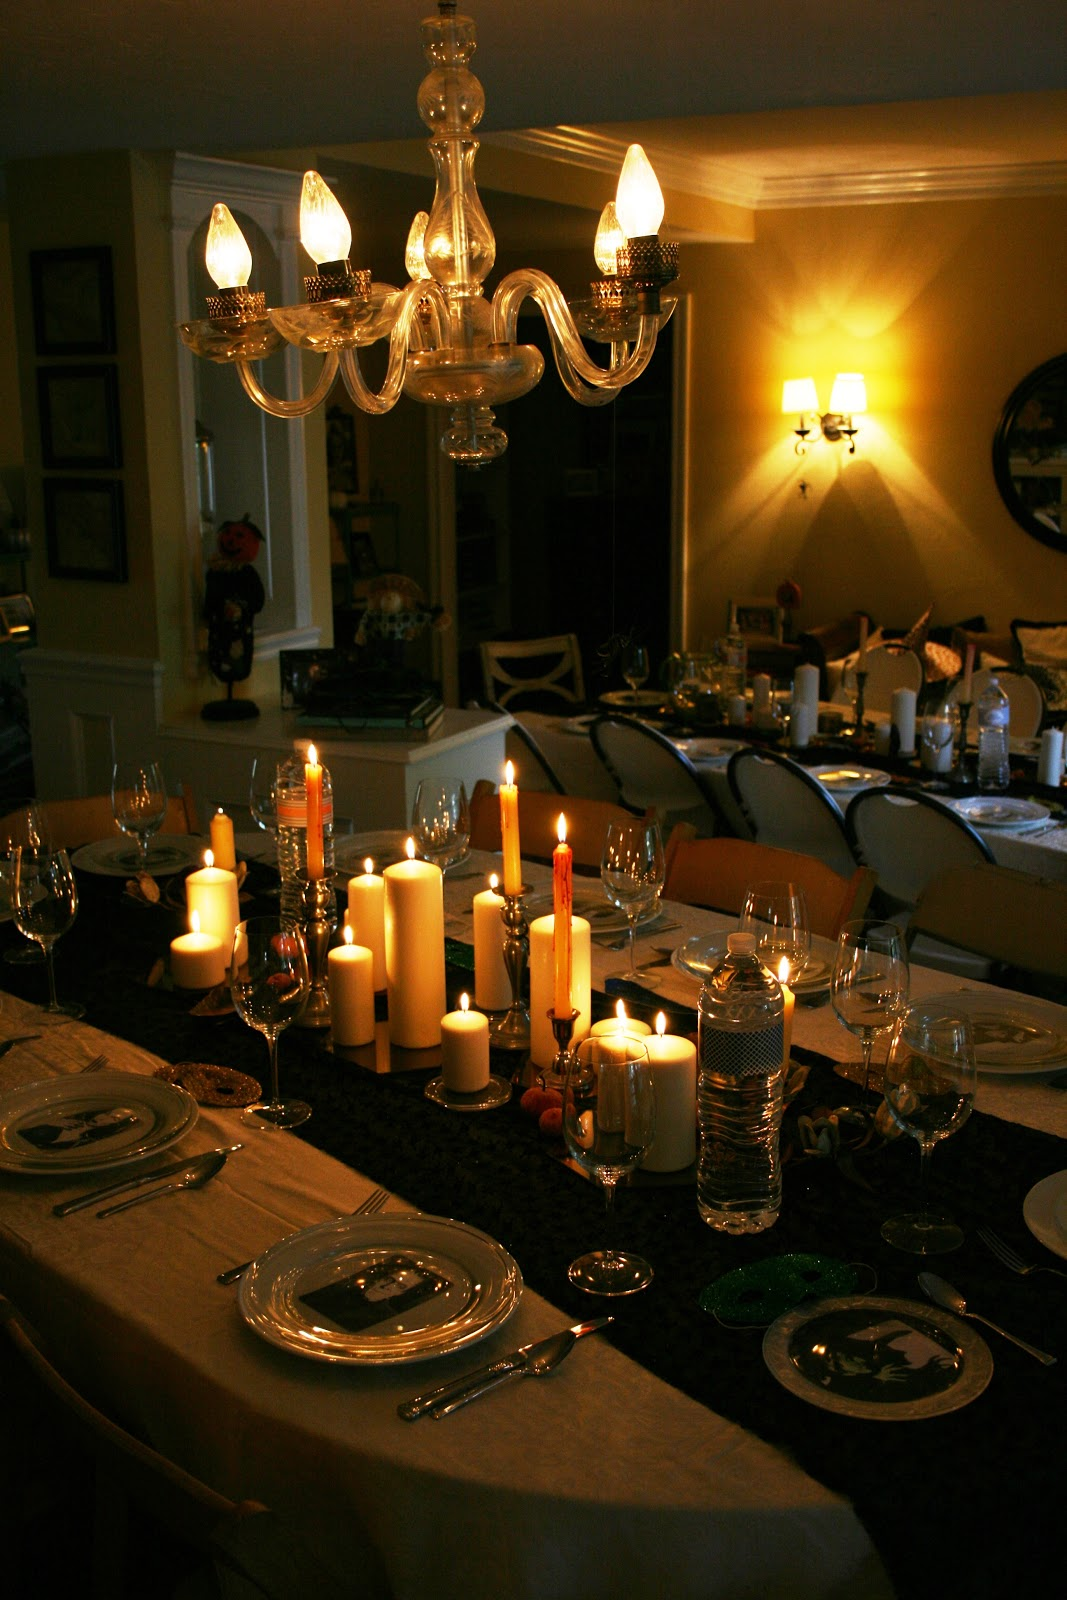 10 murder mystery dinner party ideas -